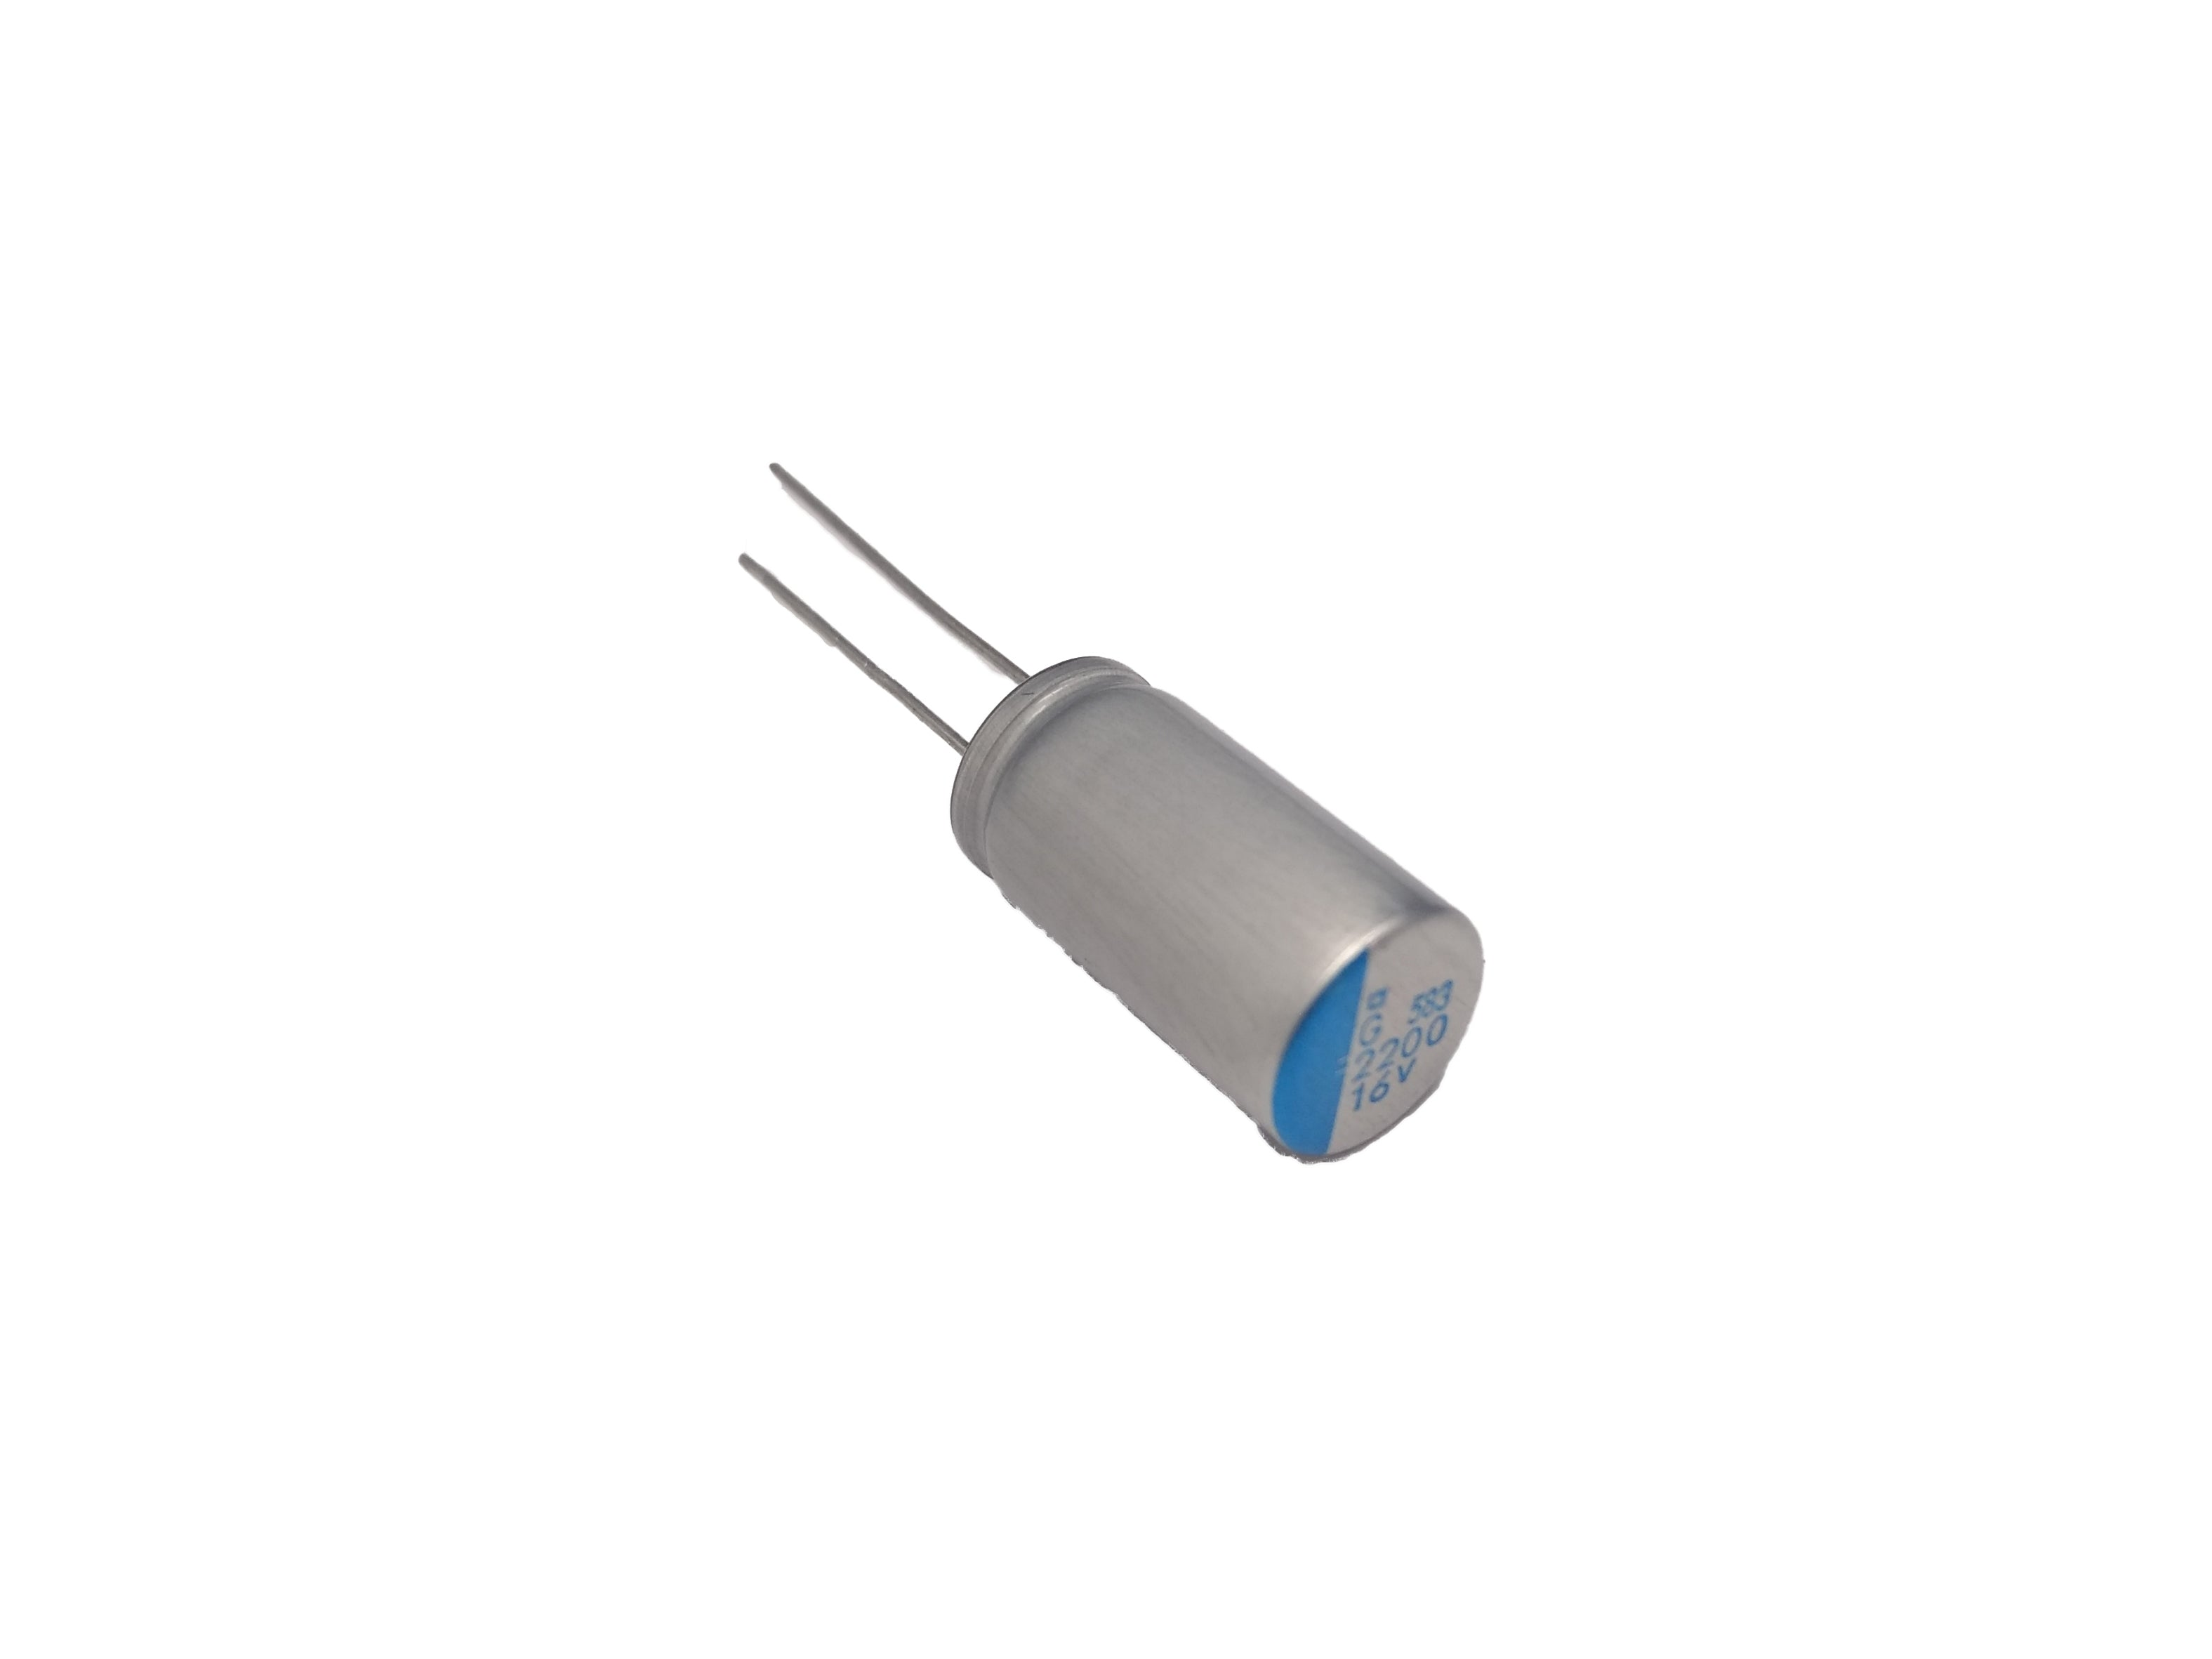 R1 High Performance ESC Capacitor 040006 - R1 Brushless Motor Lab, LLC.